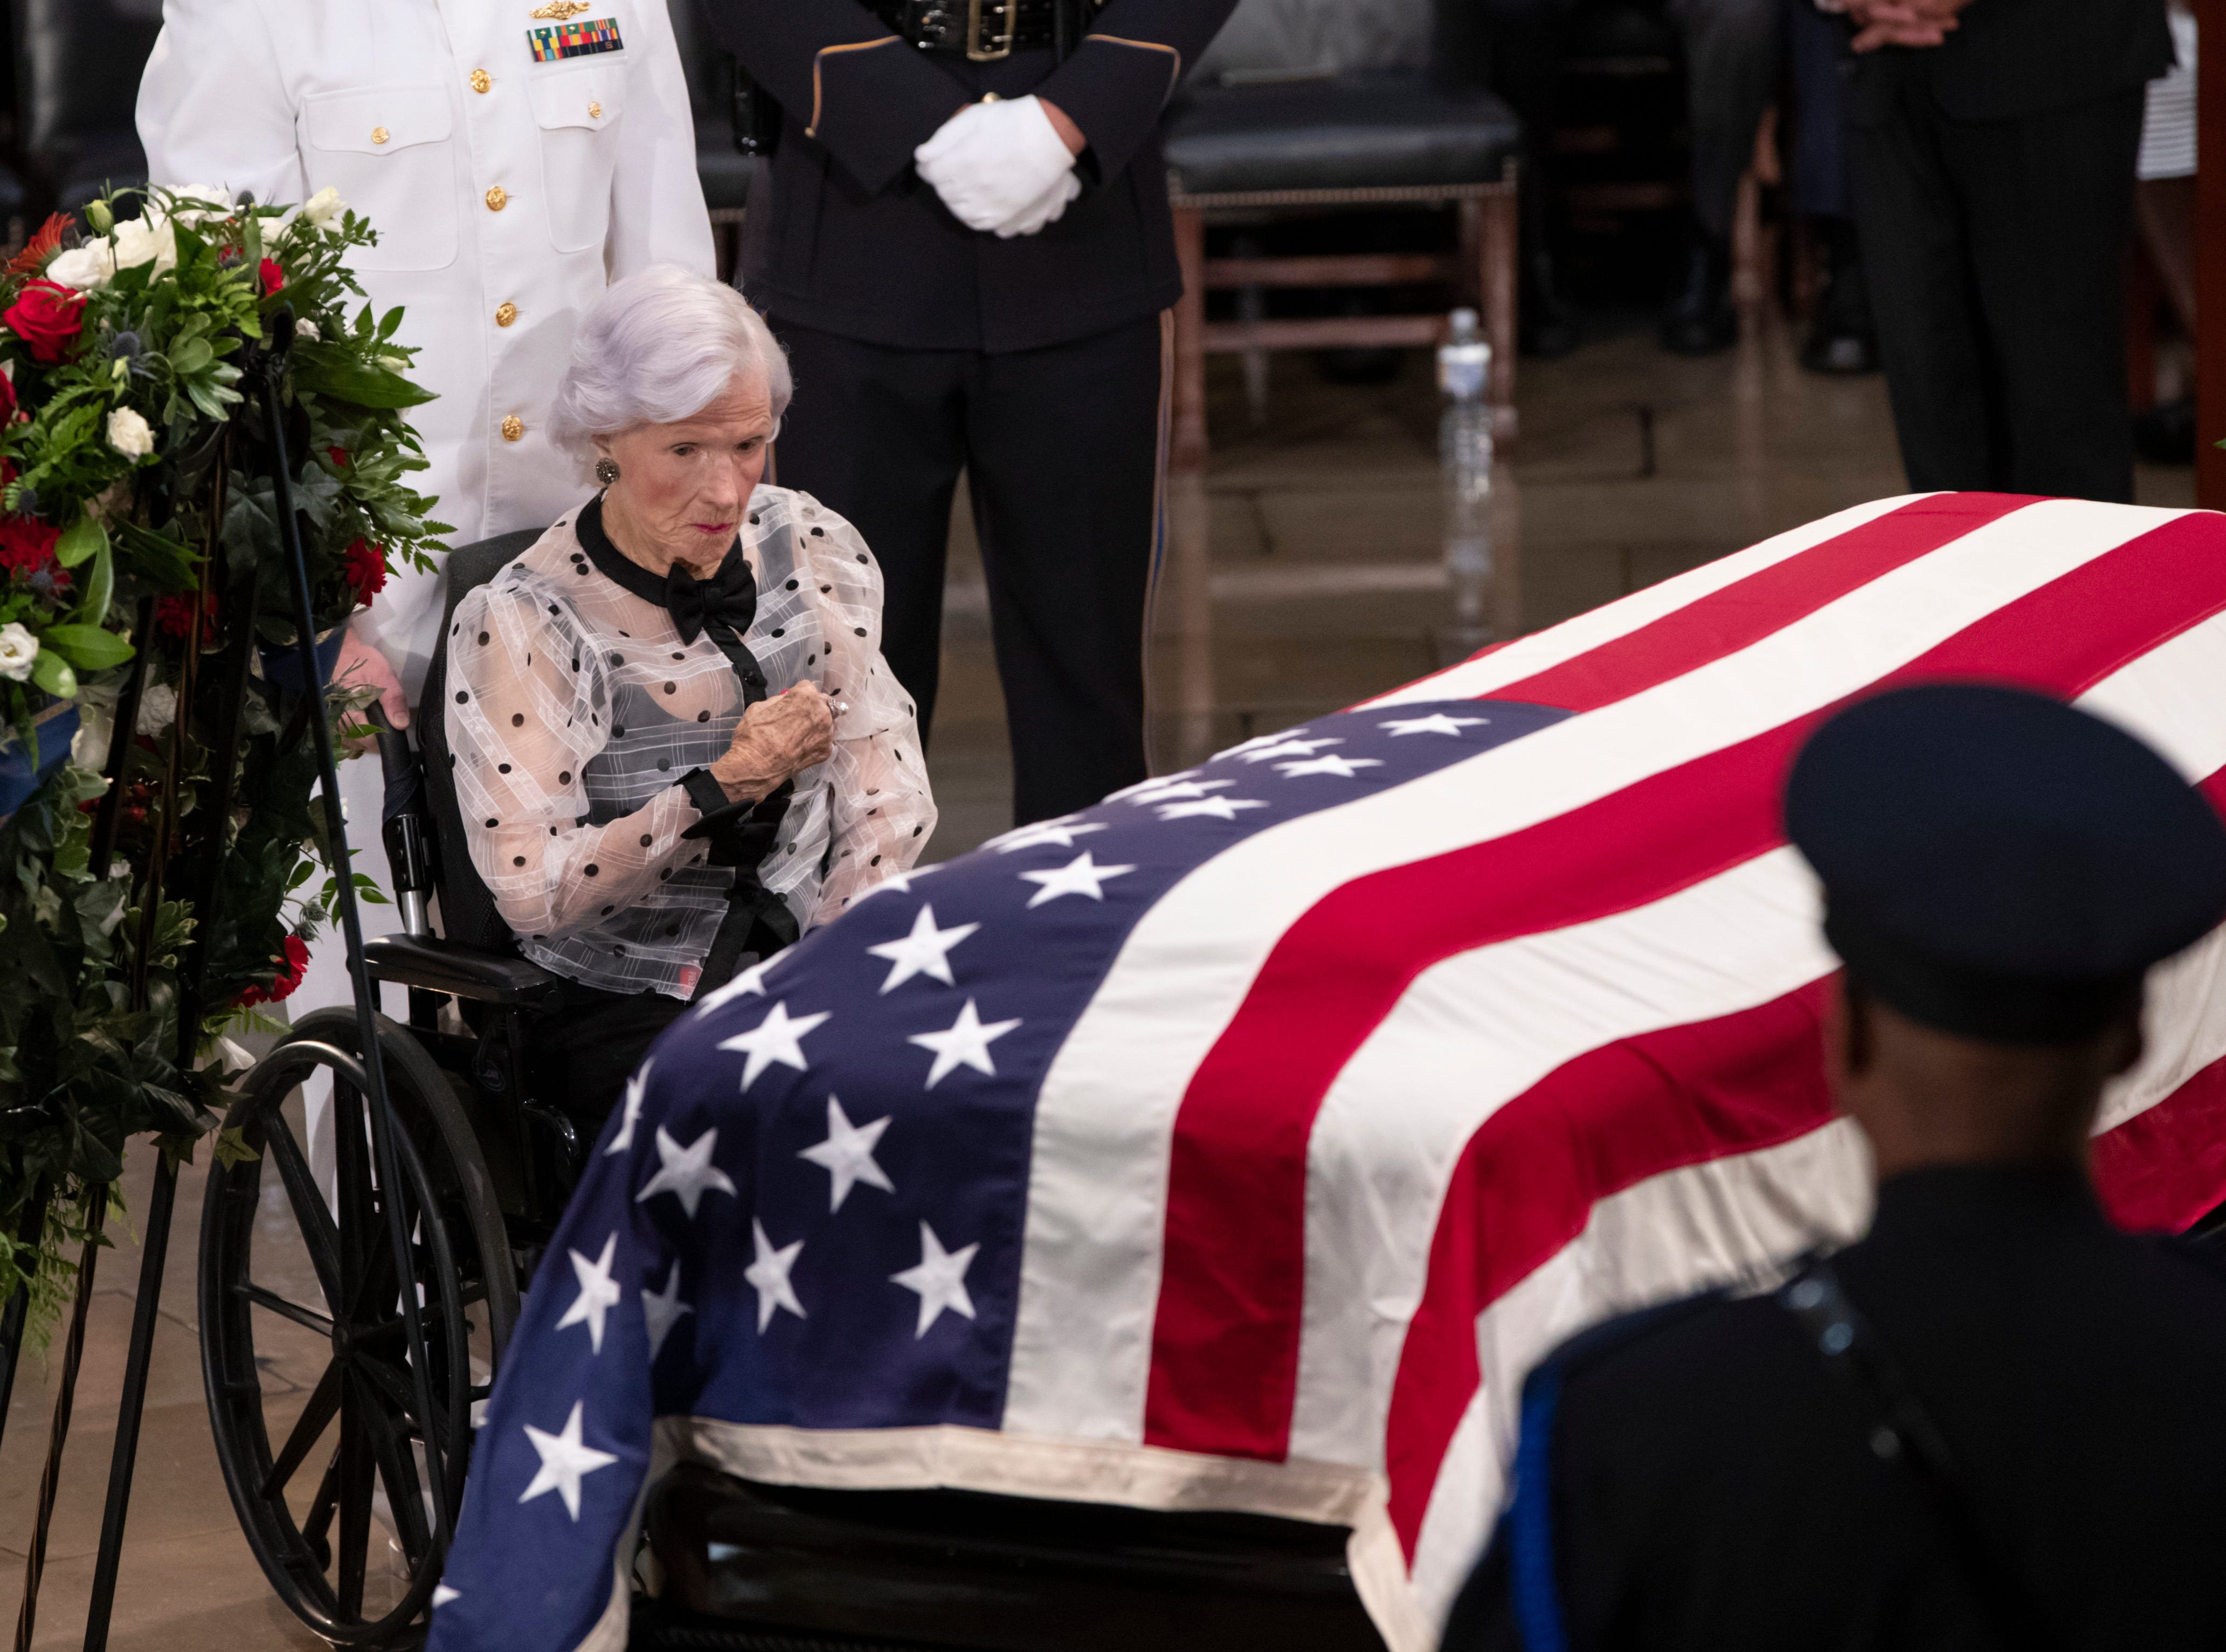 Roberta McCain, the 106-year-old mother of Sen. John McCain of Arizona, stops at his flag-draped casket in the U.S. Capitol rotunda during a farewell ceremony, Friday, Aug. 31, 2018, in Washington. (AP Photo/J. Scott Applewhite)